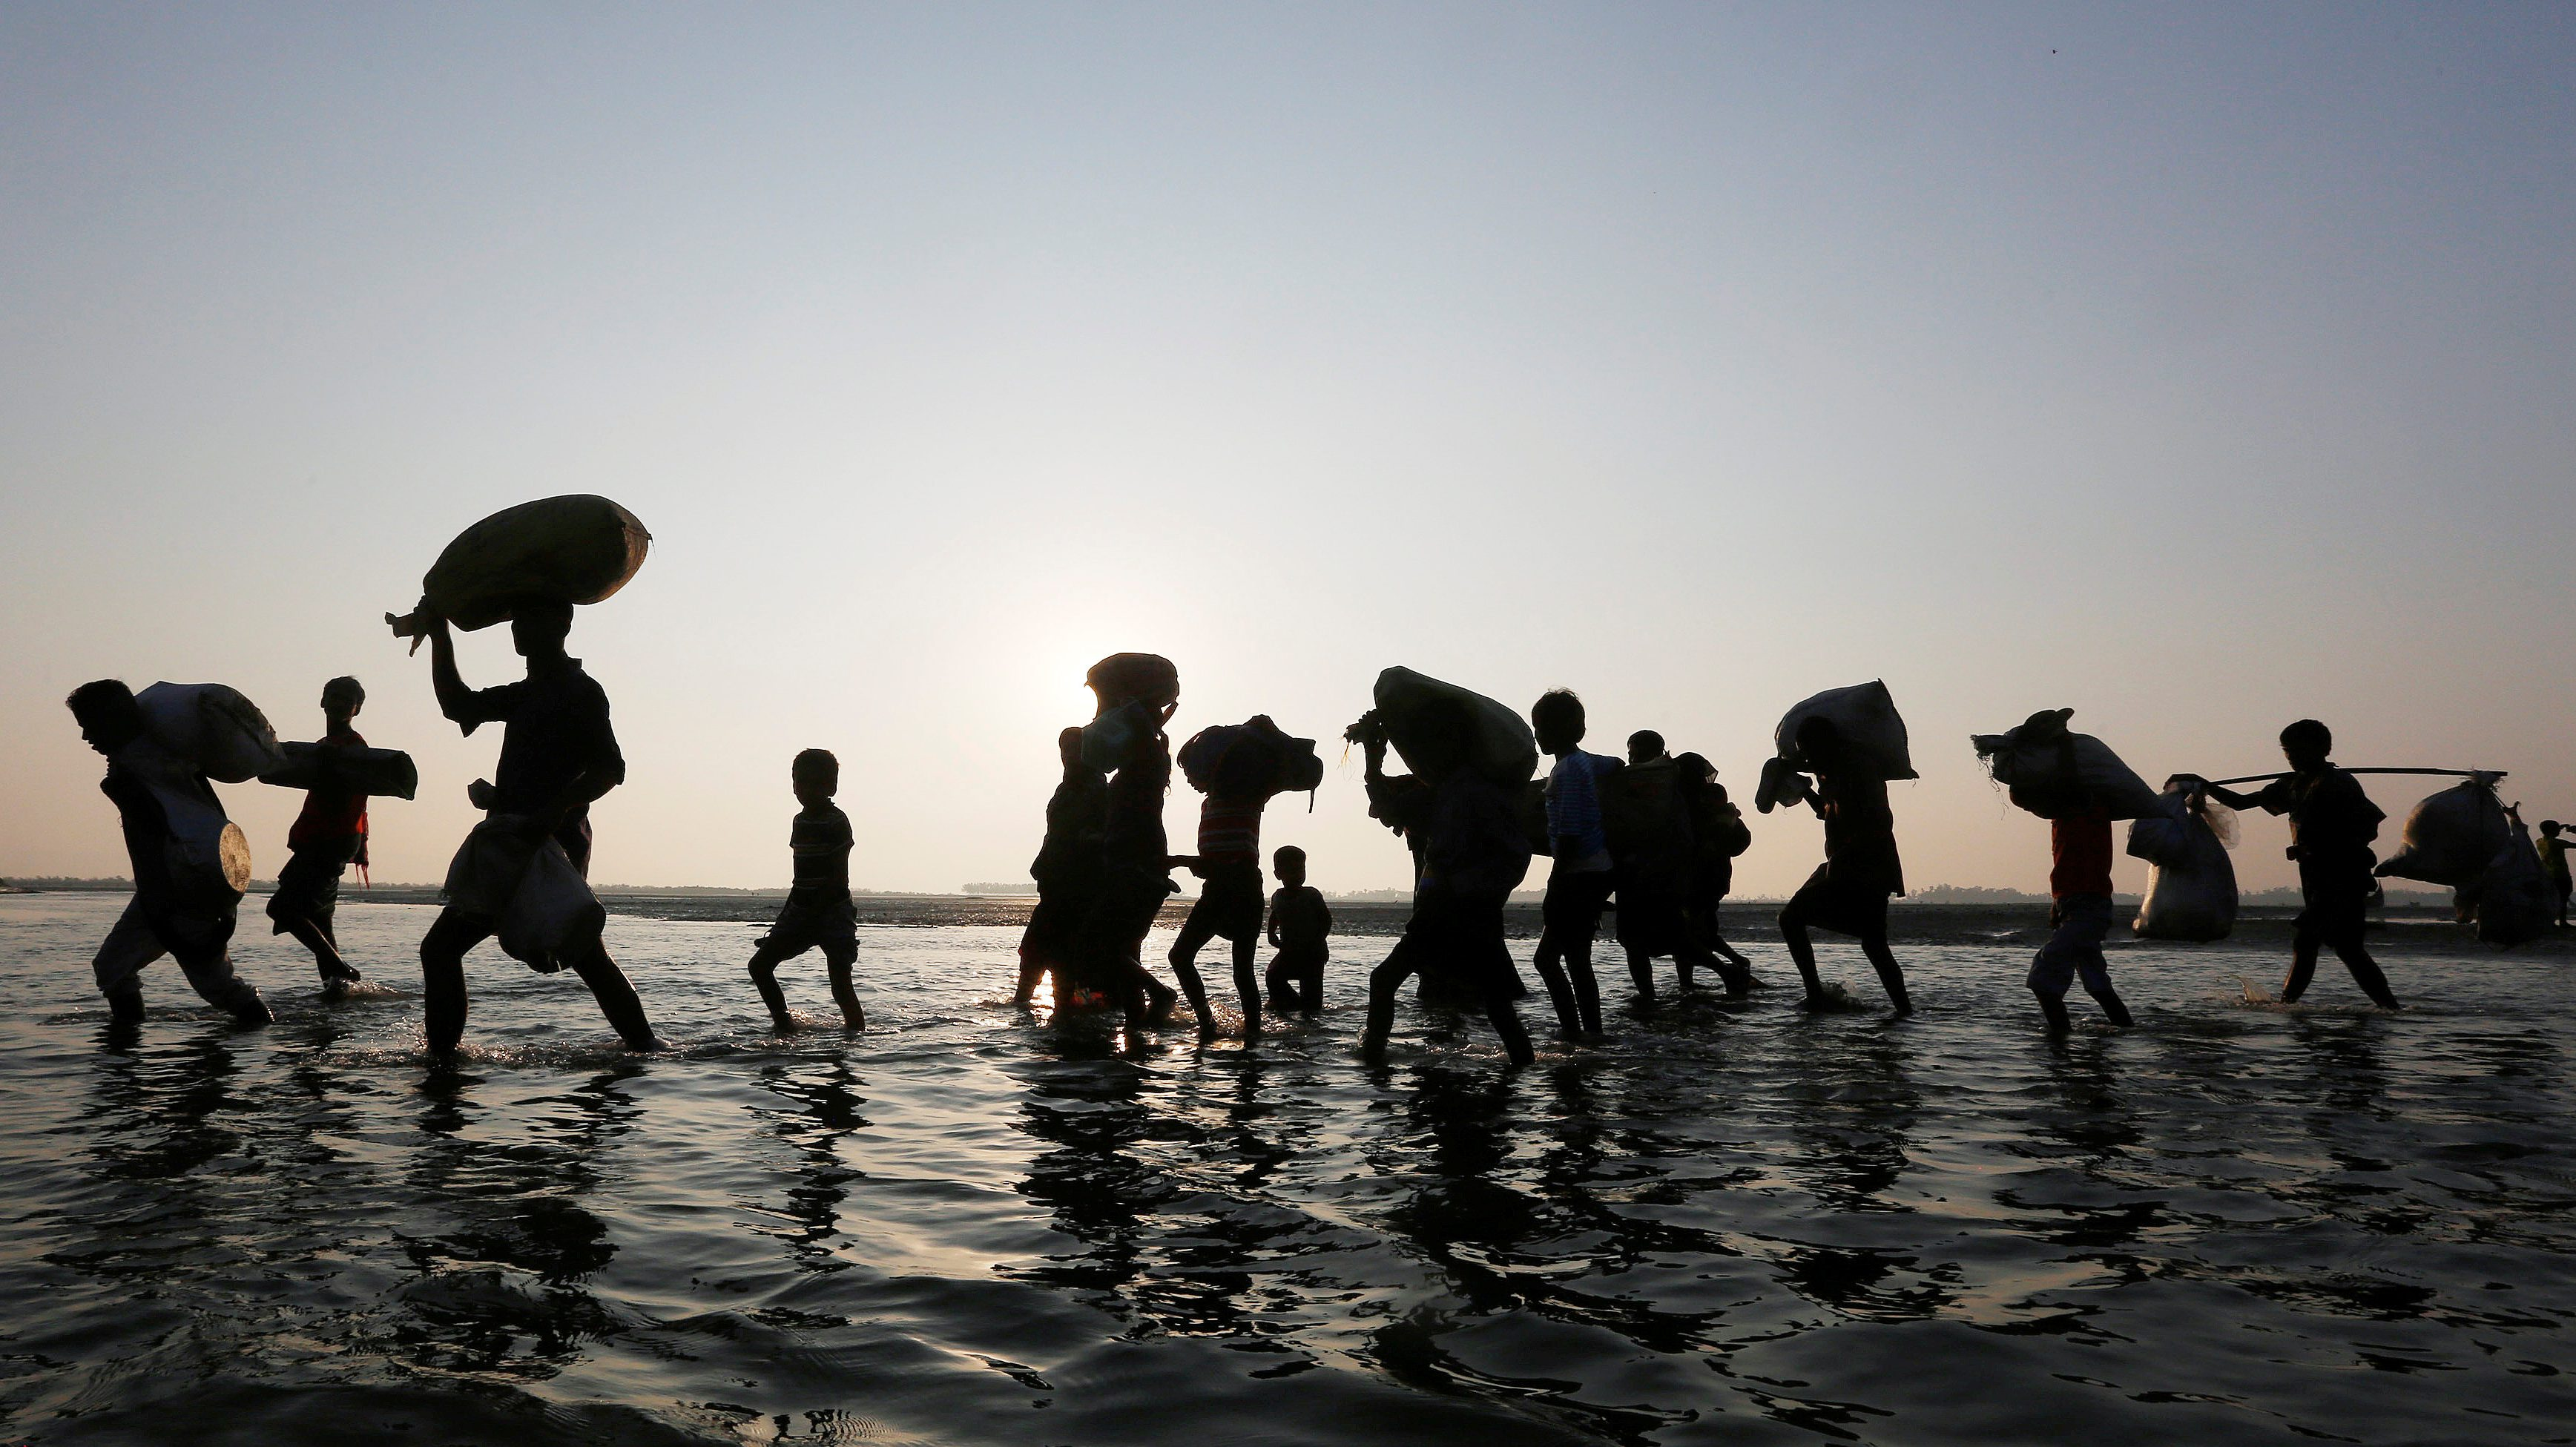 Rohingya refugees walk through water after crossing the Bangladesh-Myanmar border, at a port in Teknaf. Estimates vary, but the consensus is that there will be at least 200 million people displaced by climate change by 2050.